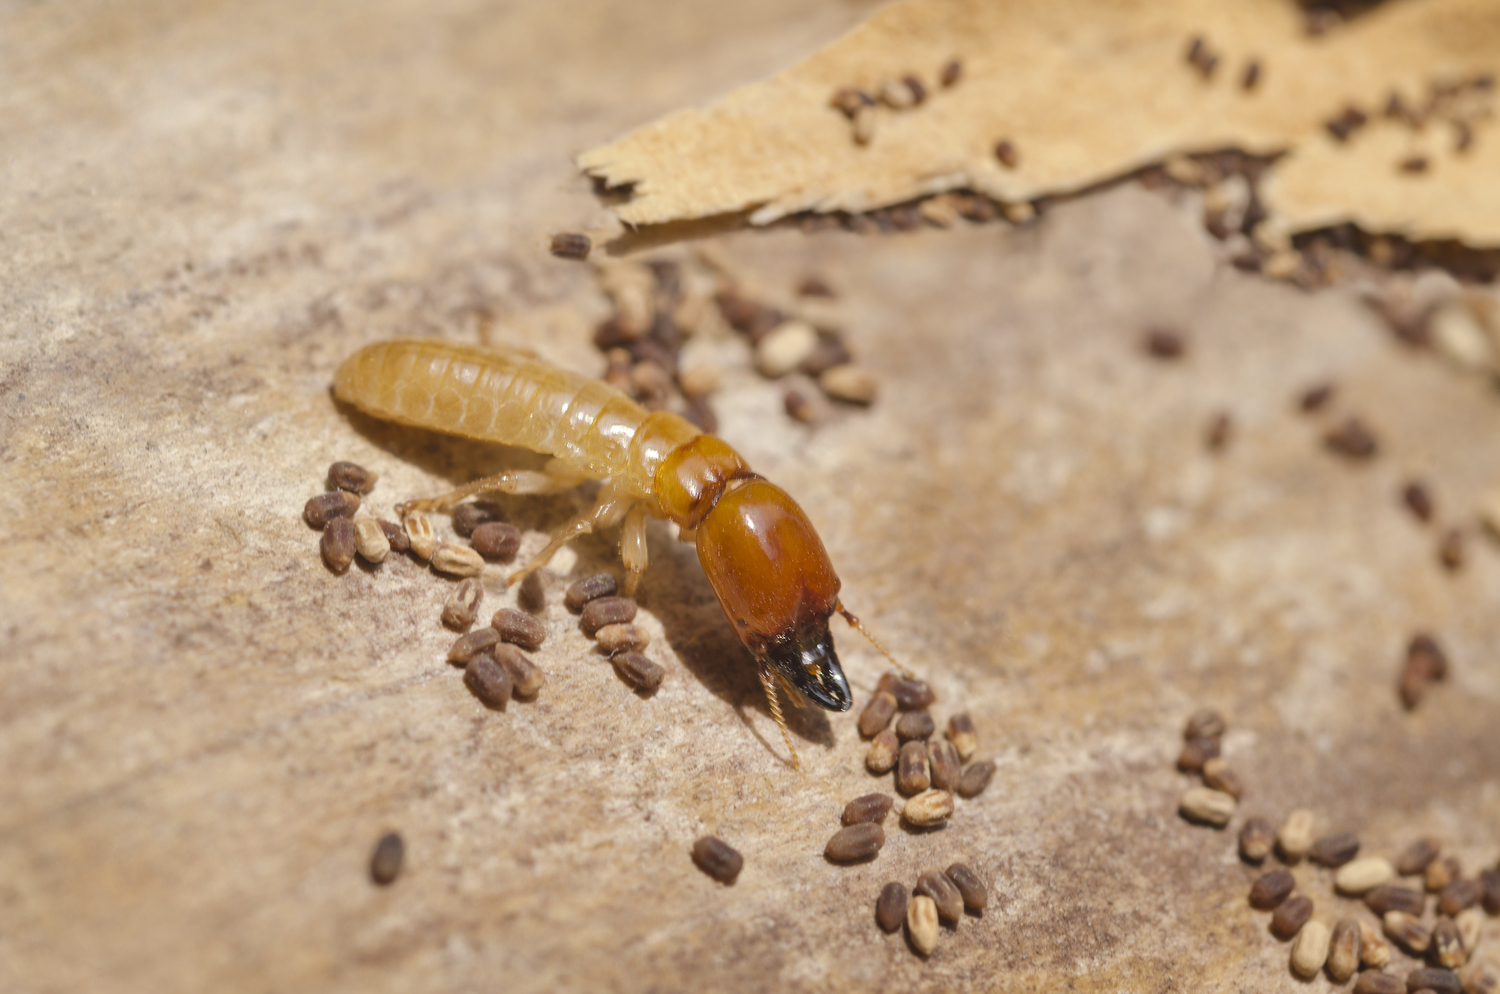 Dry-Wood termite damage can be prevented with a little help from Pest Worx here in Durban